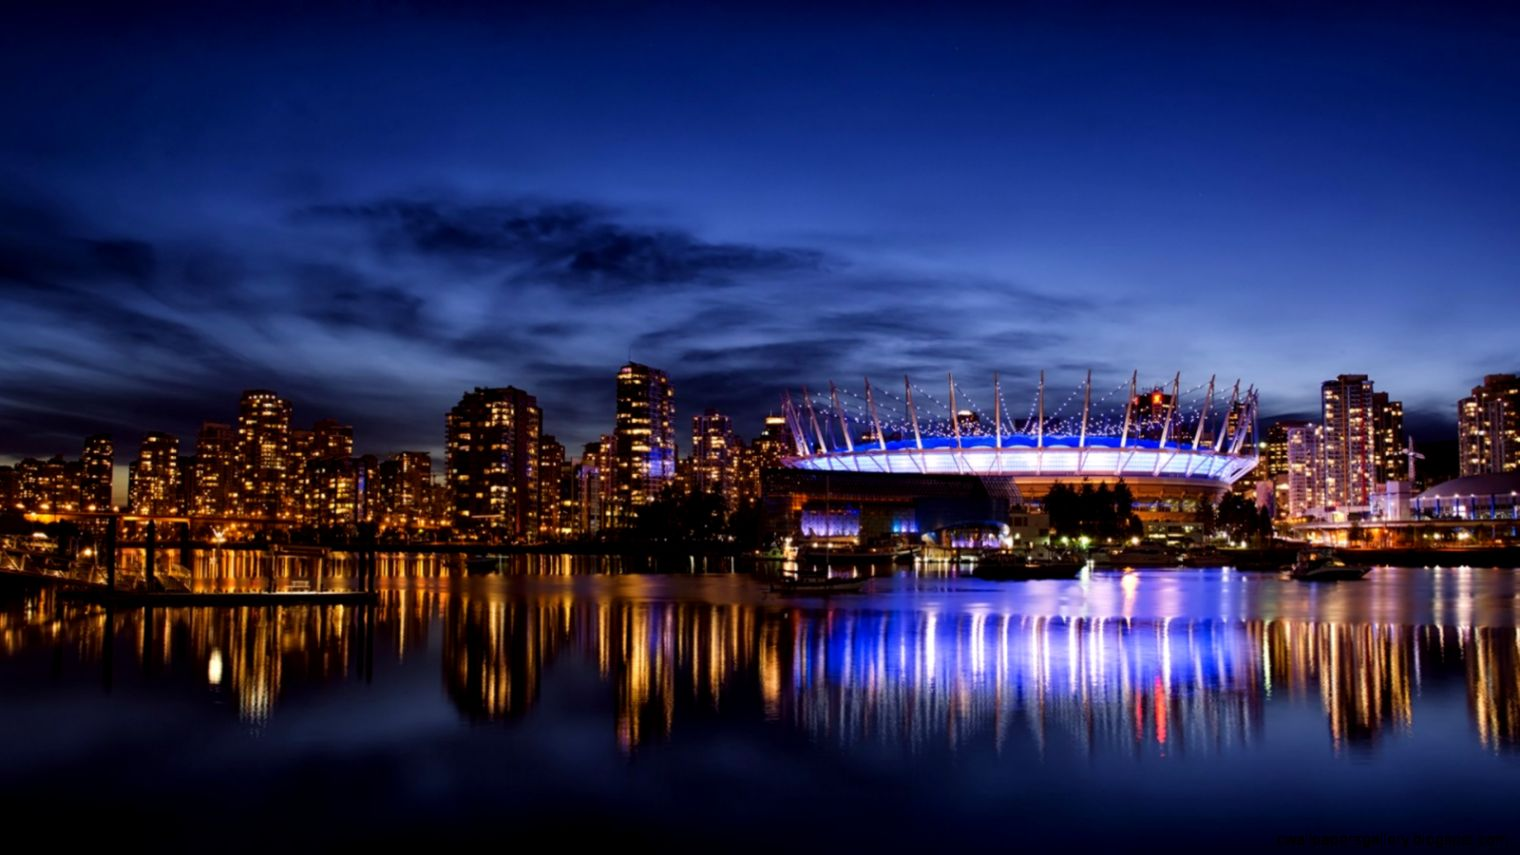 Vancouver City Night Blue Sky Wallpapers   1600x900   380682